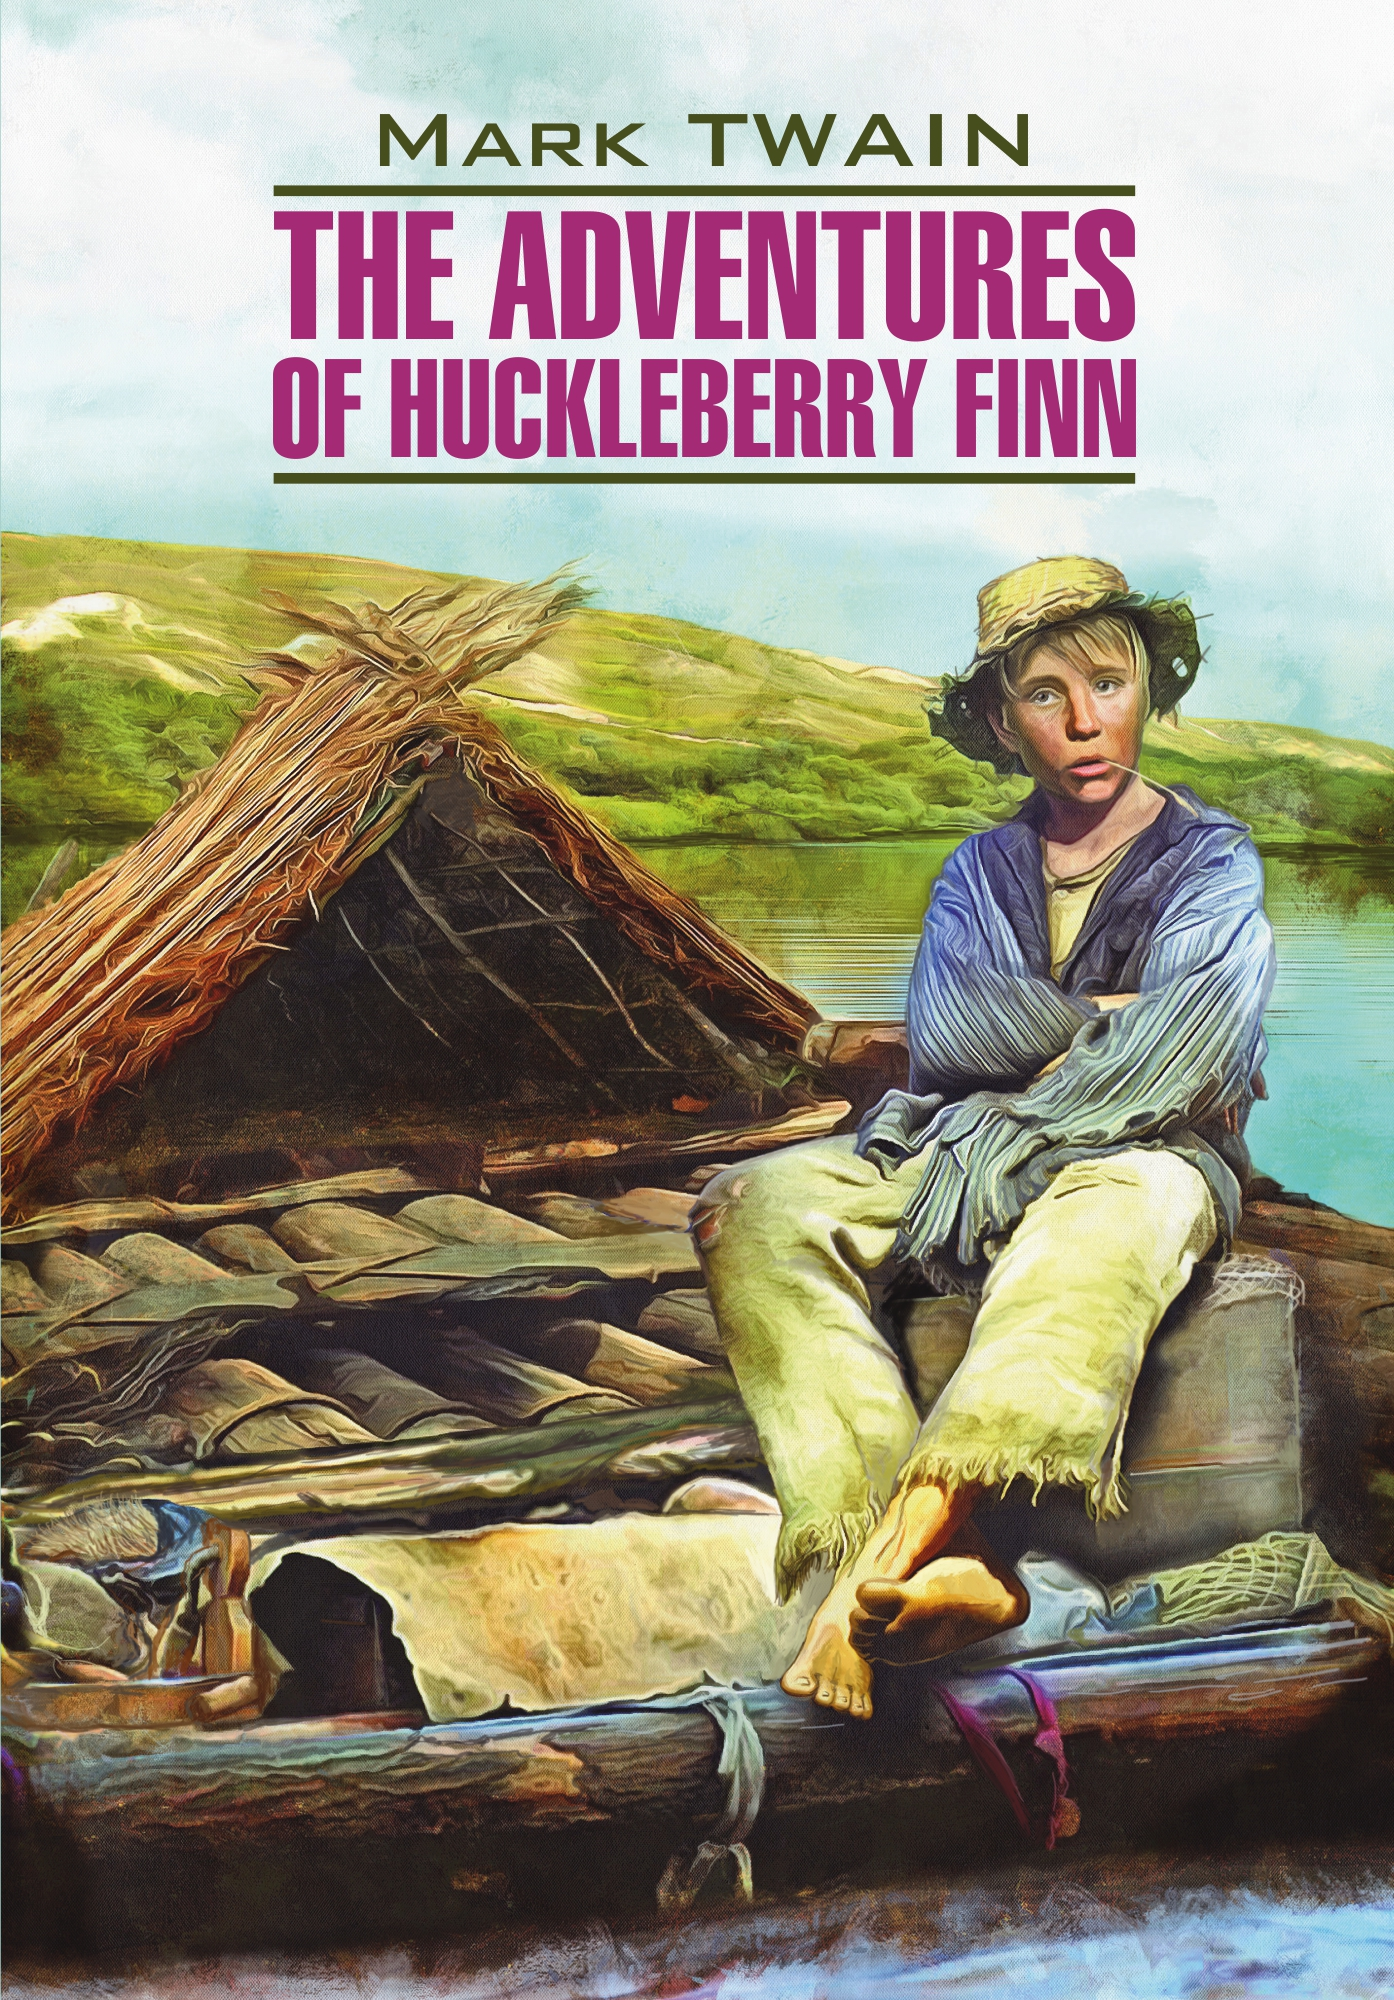 Марк Твен The Adventures of Huckleberry Finn / Приключения Гекльберри Финна. Книга для чтения на английском языке lepin new 460pcs 07051 batman movie series the killer crocodile tail gator 70907 building blocks bricks educational toys